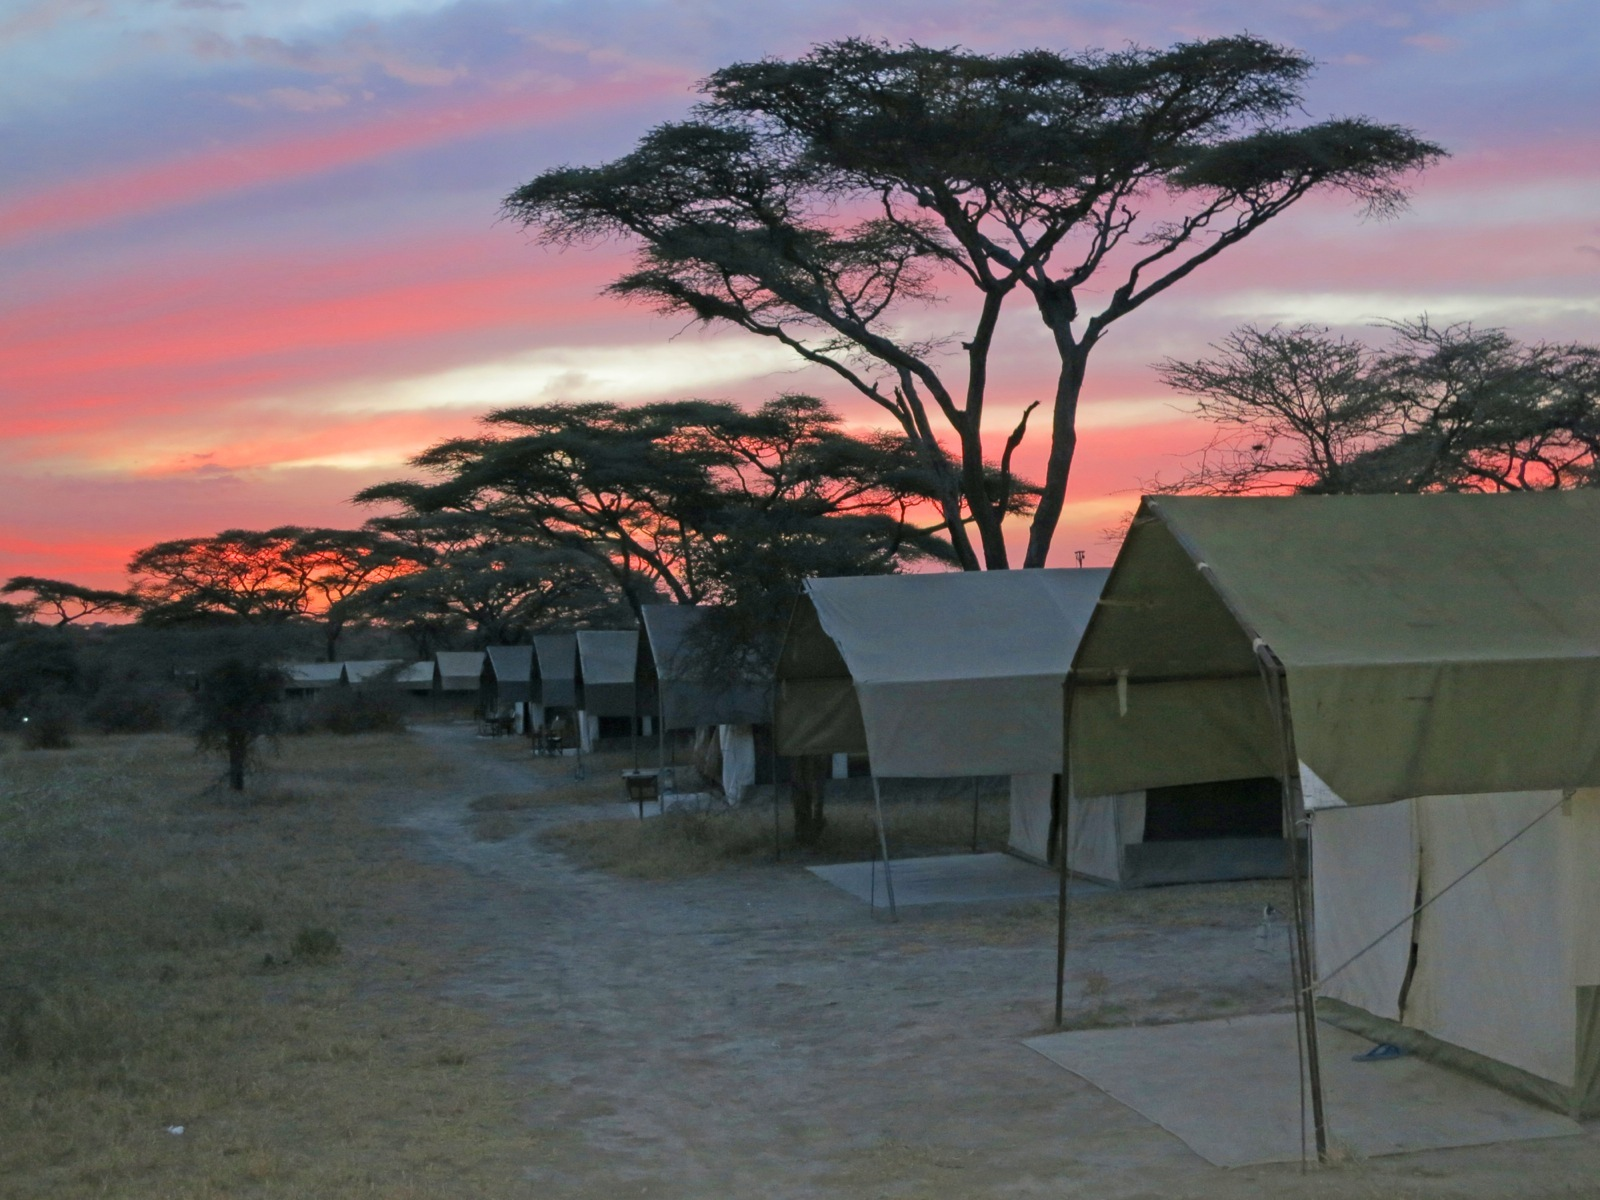 A series of safari tents in a line in the Serengeti with a gorgeous pink sunset in the background.